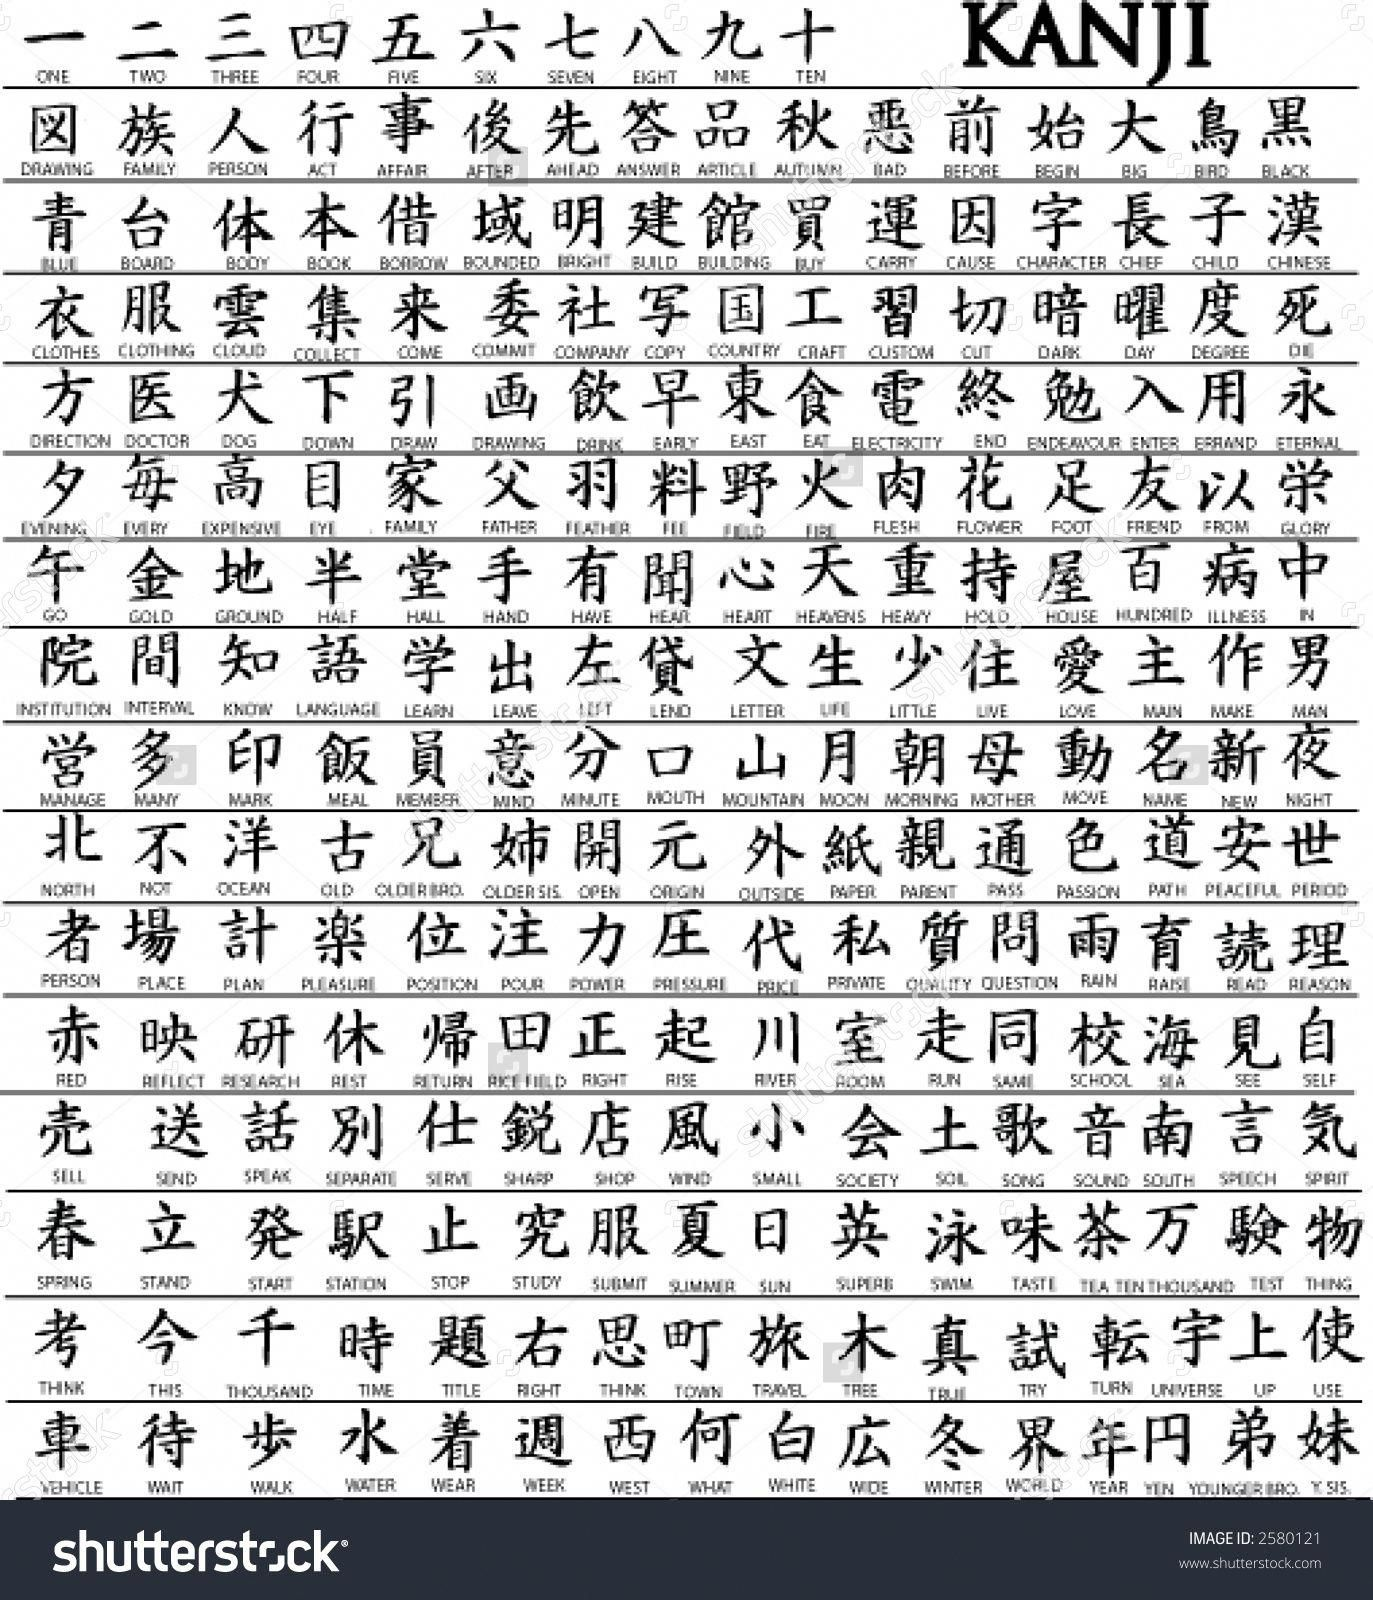 List Of 100 Kanji With Translation